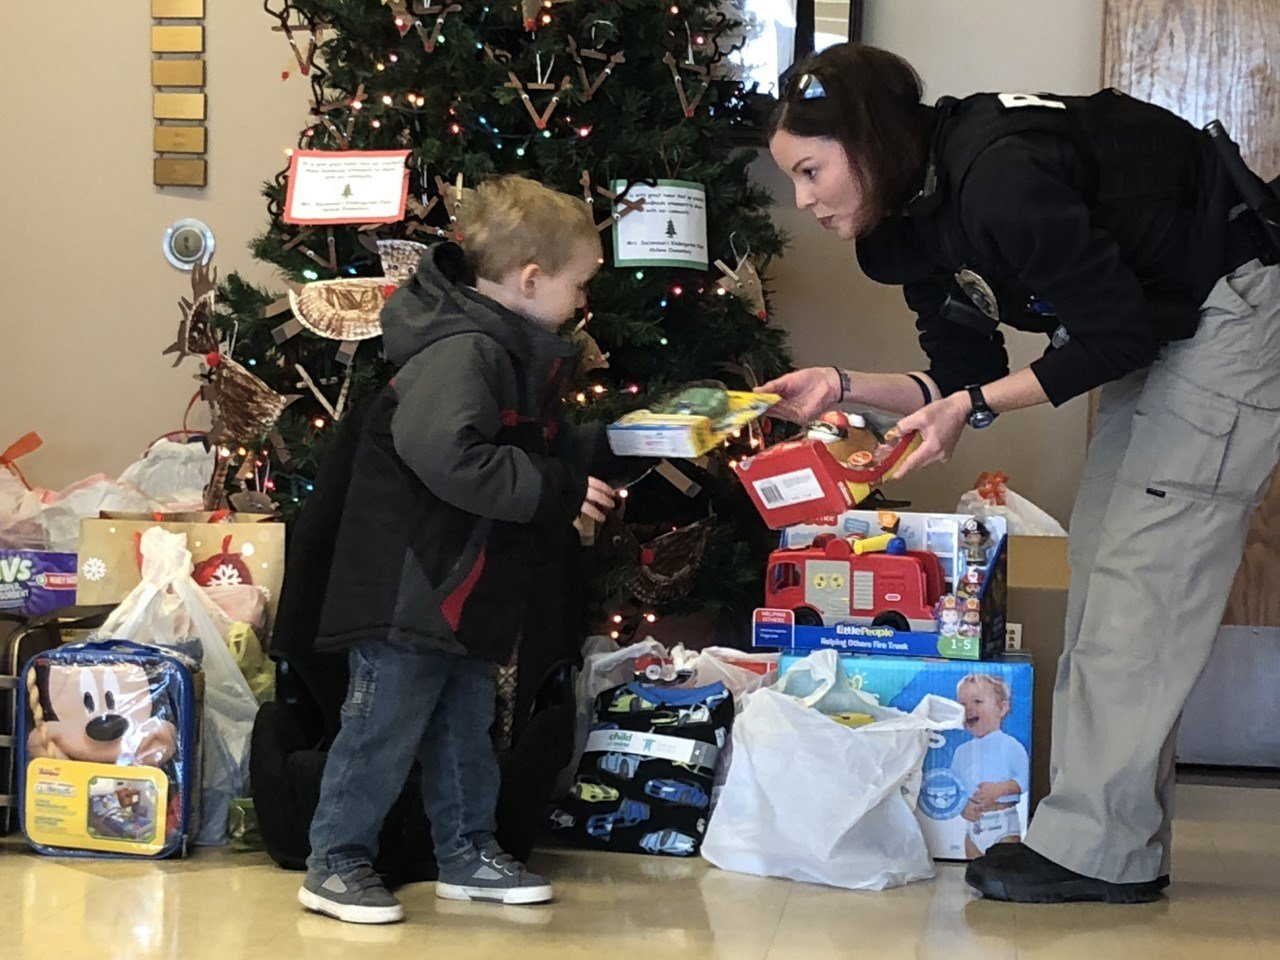 Valley Center community and officer collect donations for child in need